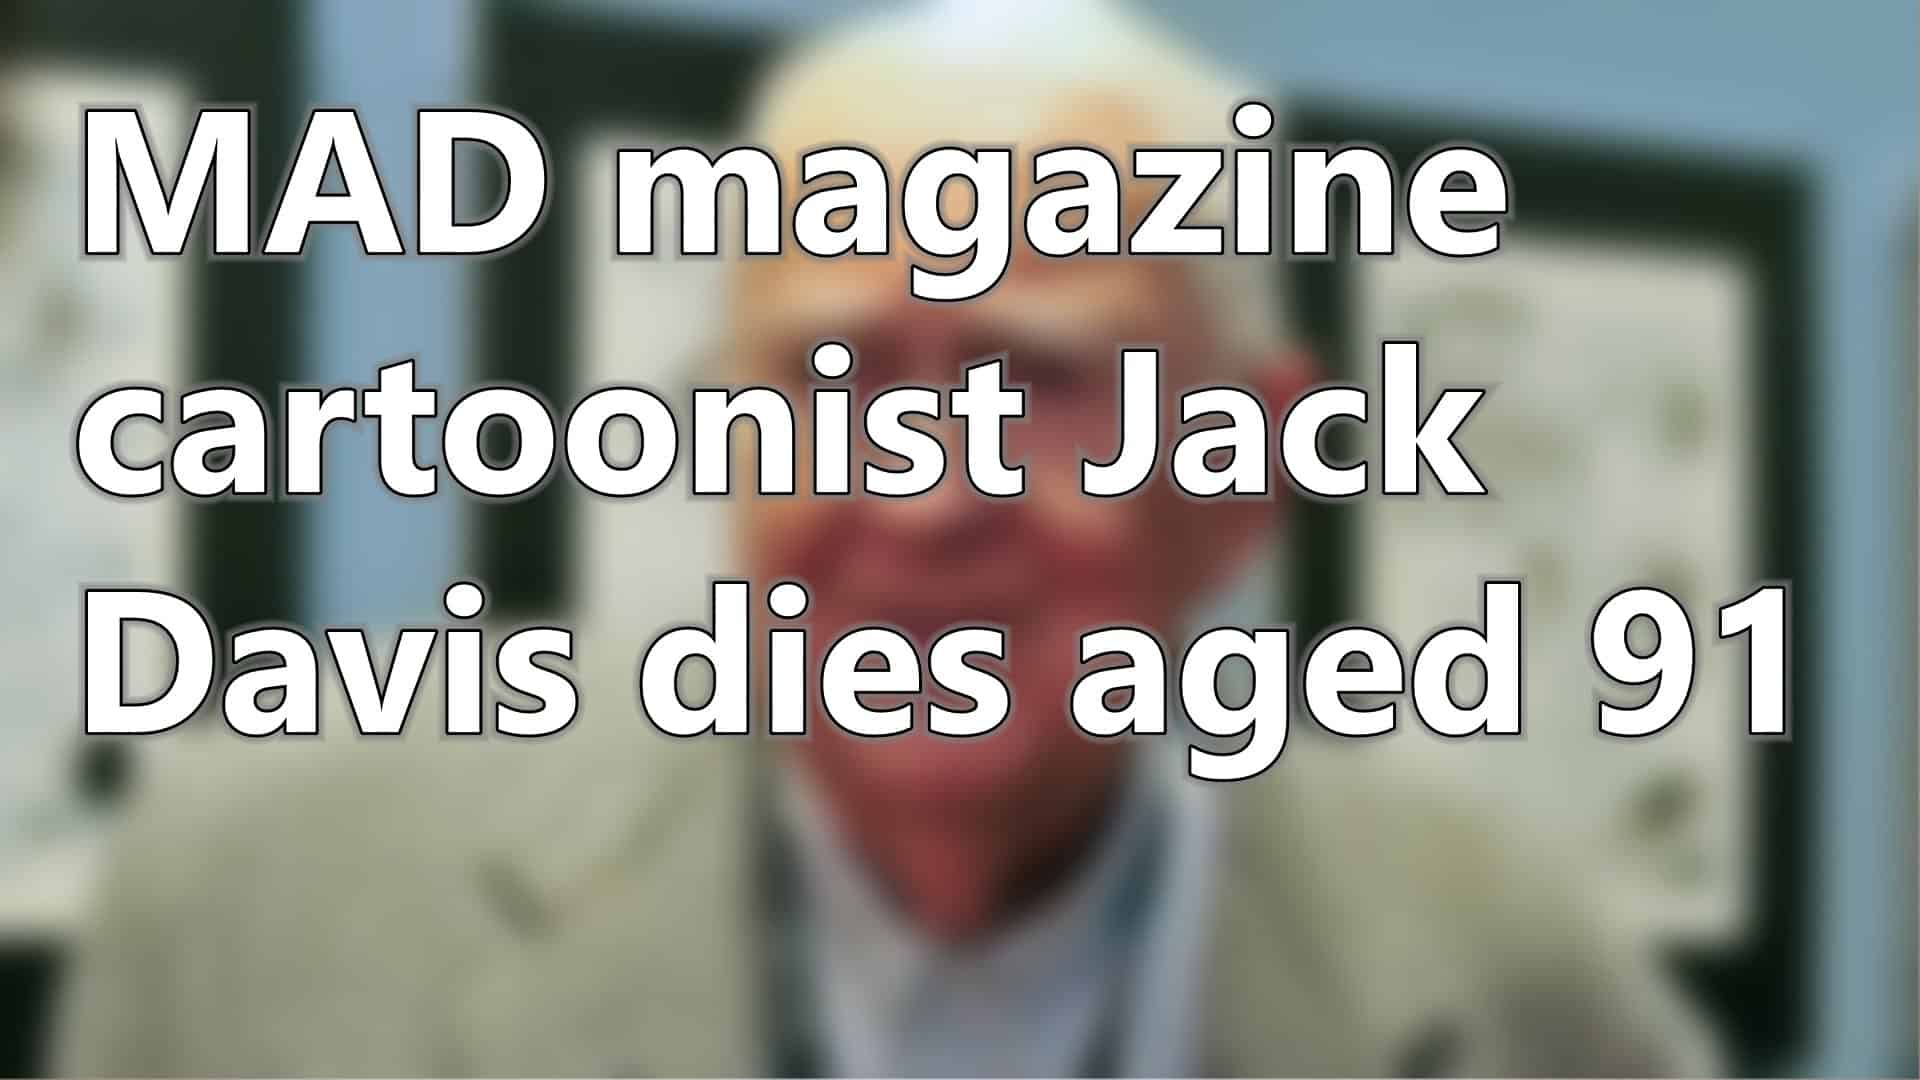 MAD magazine cartoonist Jack Davis dies aged 91 | Short News 5